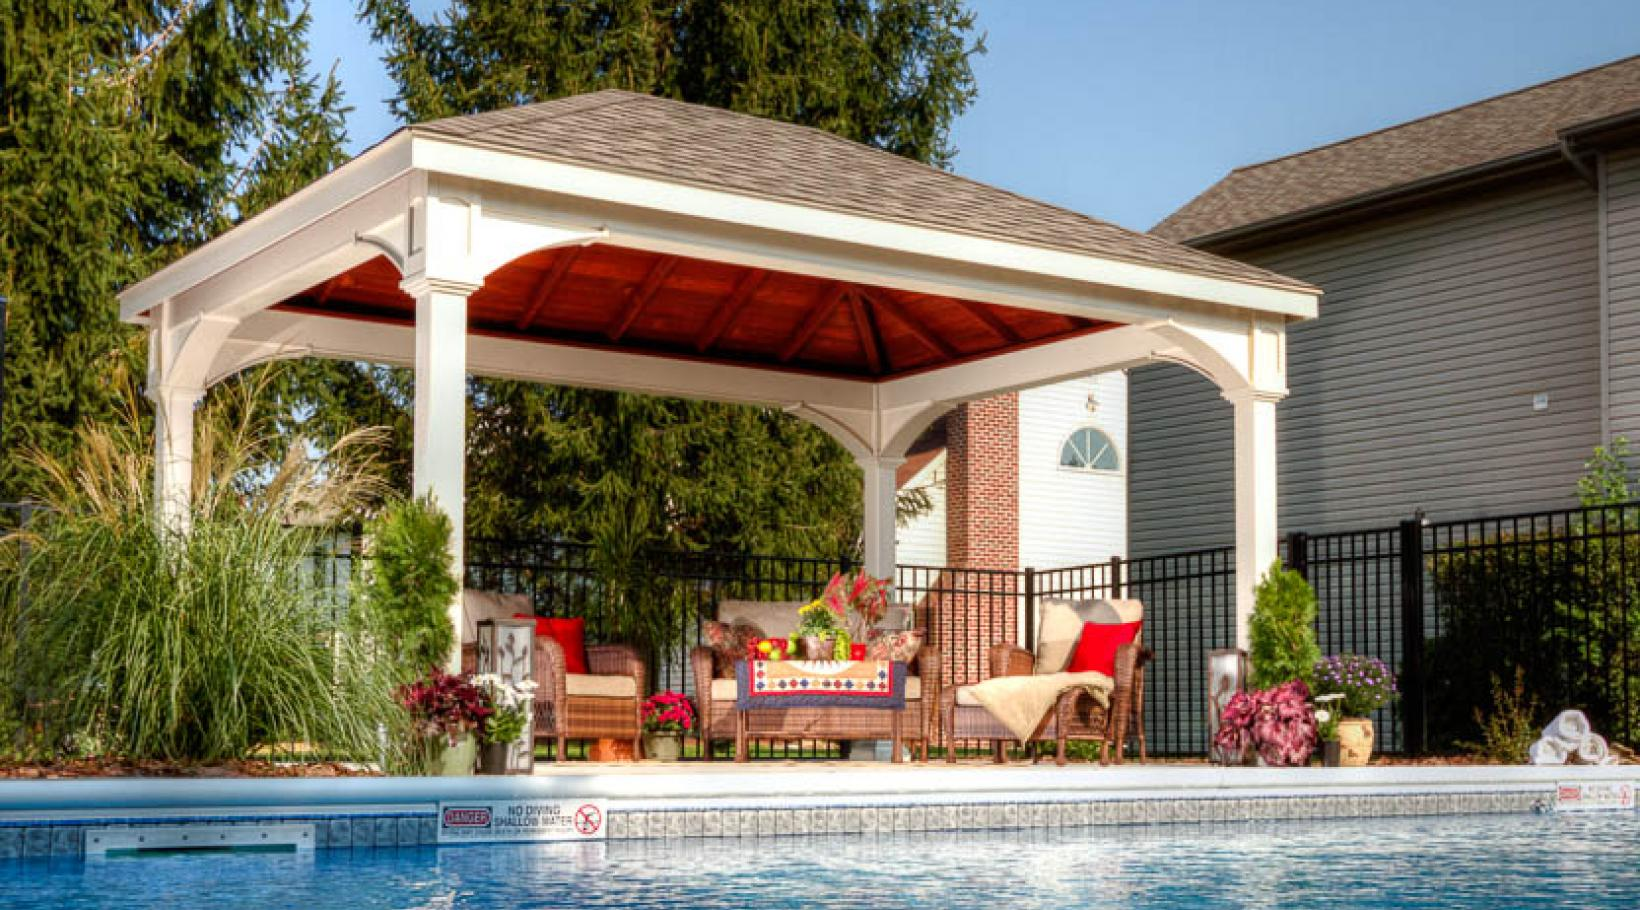 Outdoor pavilion by the pool | River View Outdoor Products